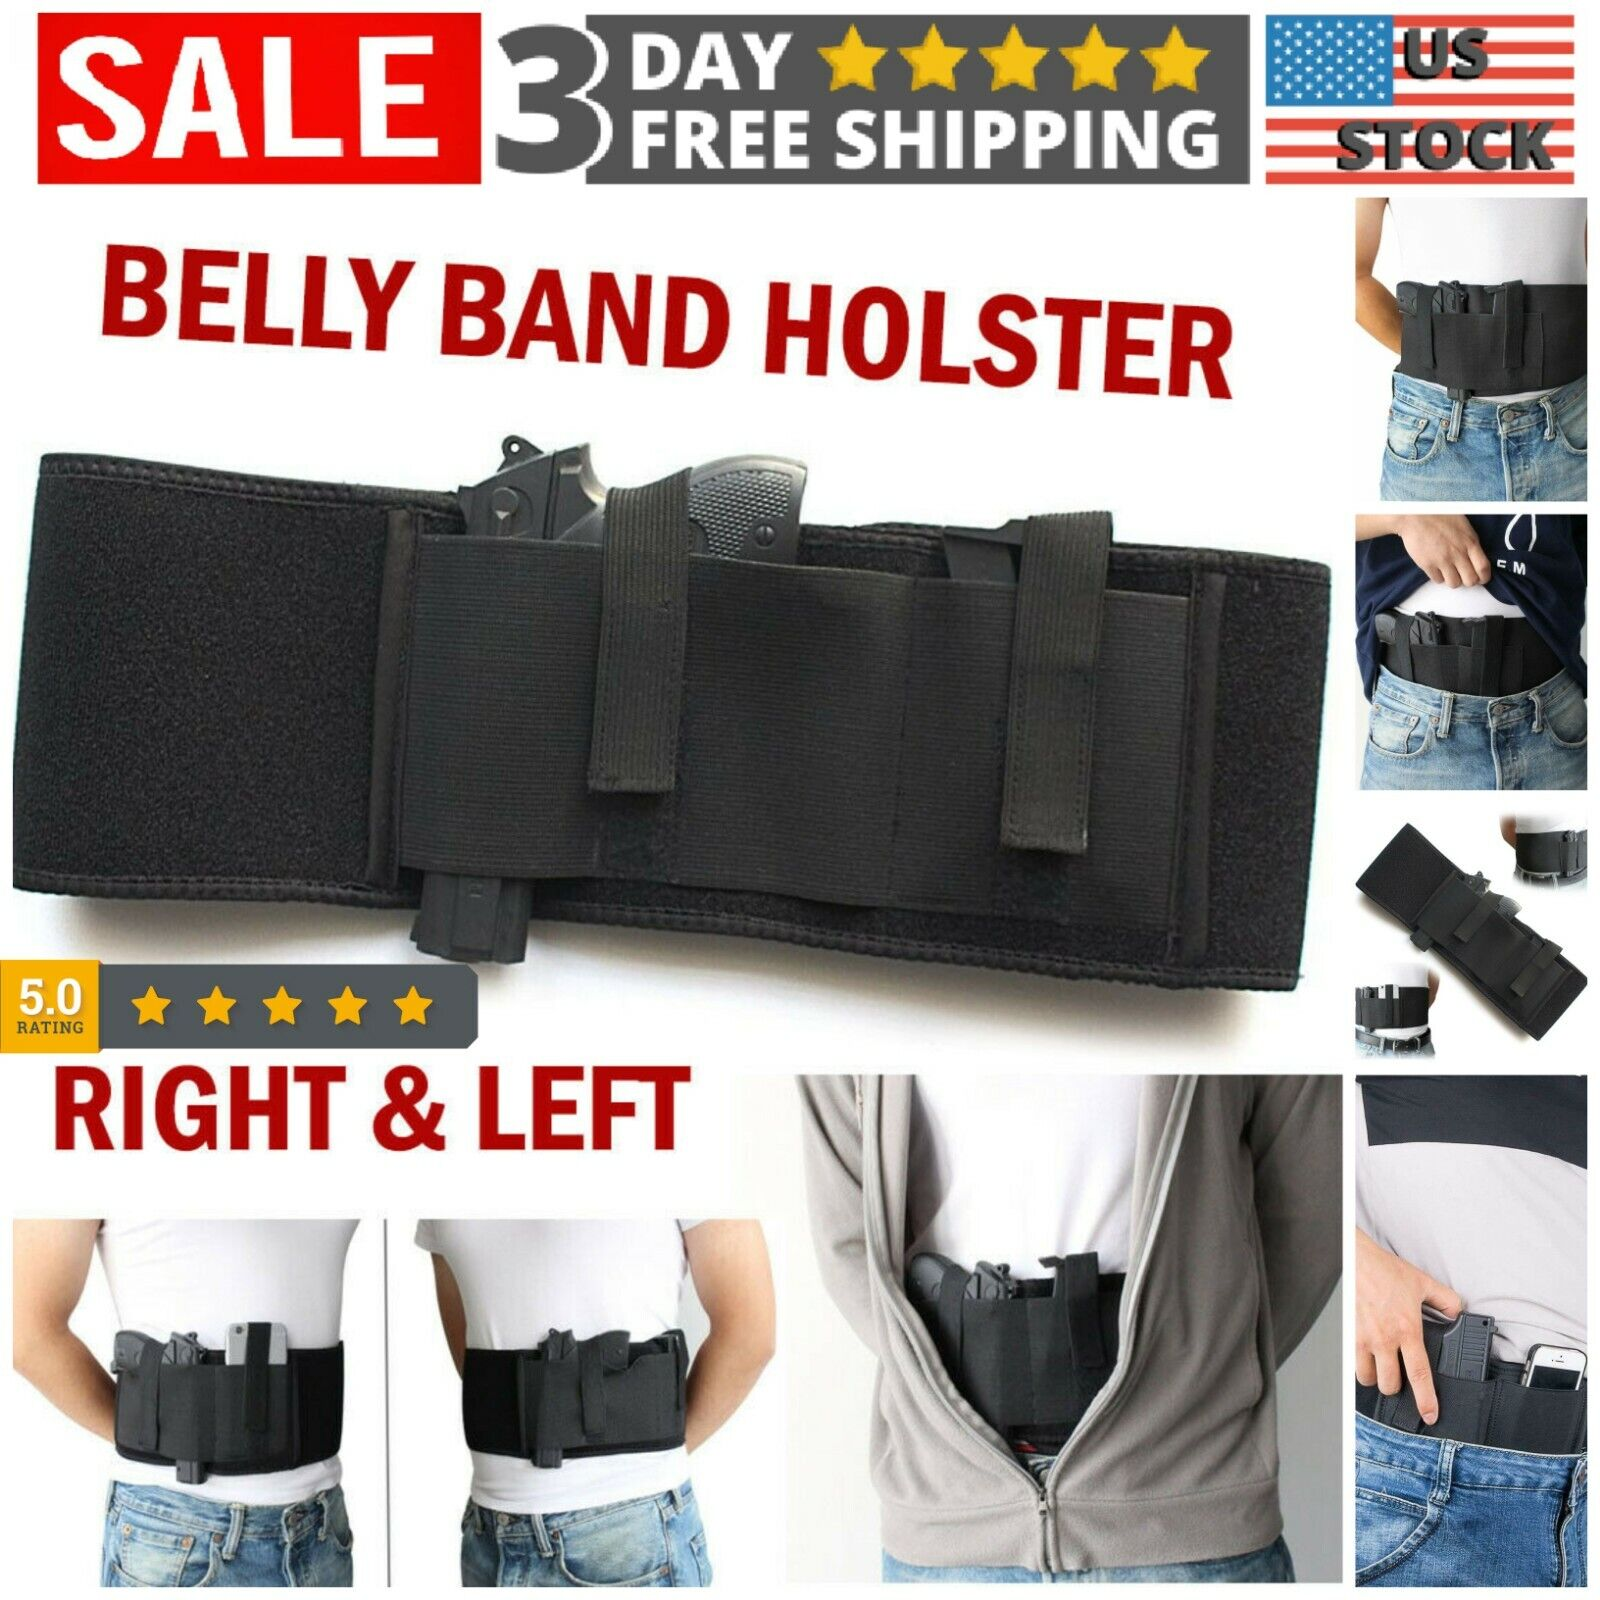 Belly Band Holster for Concealed Carry - Right or Left Hand